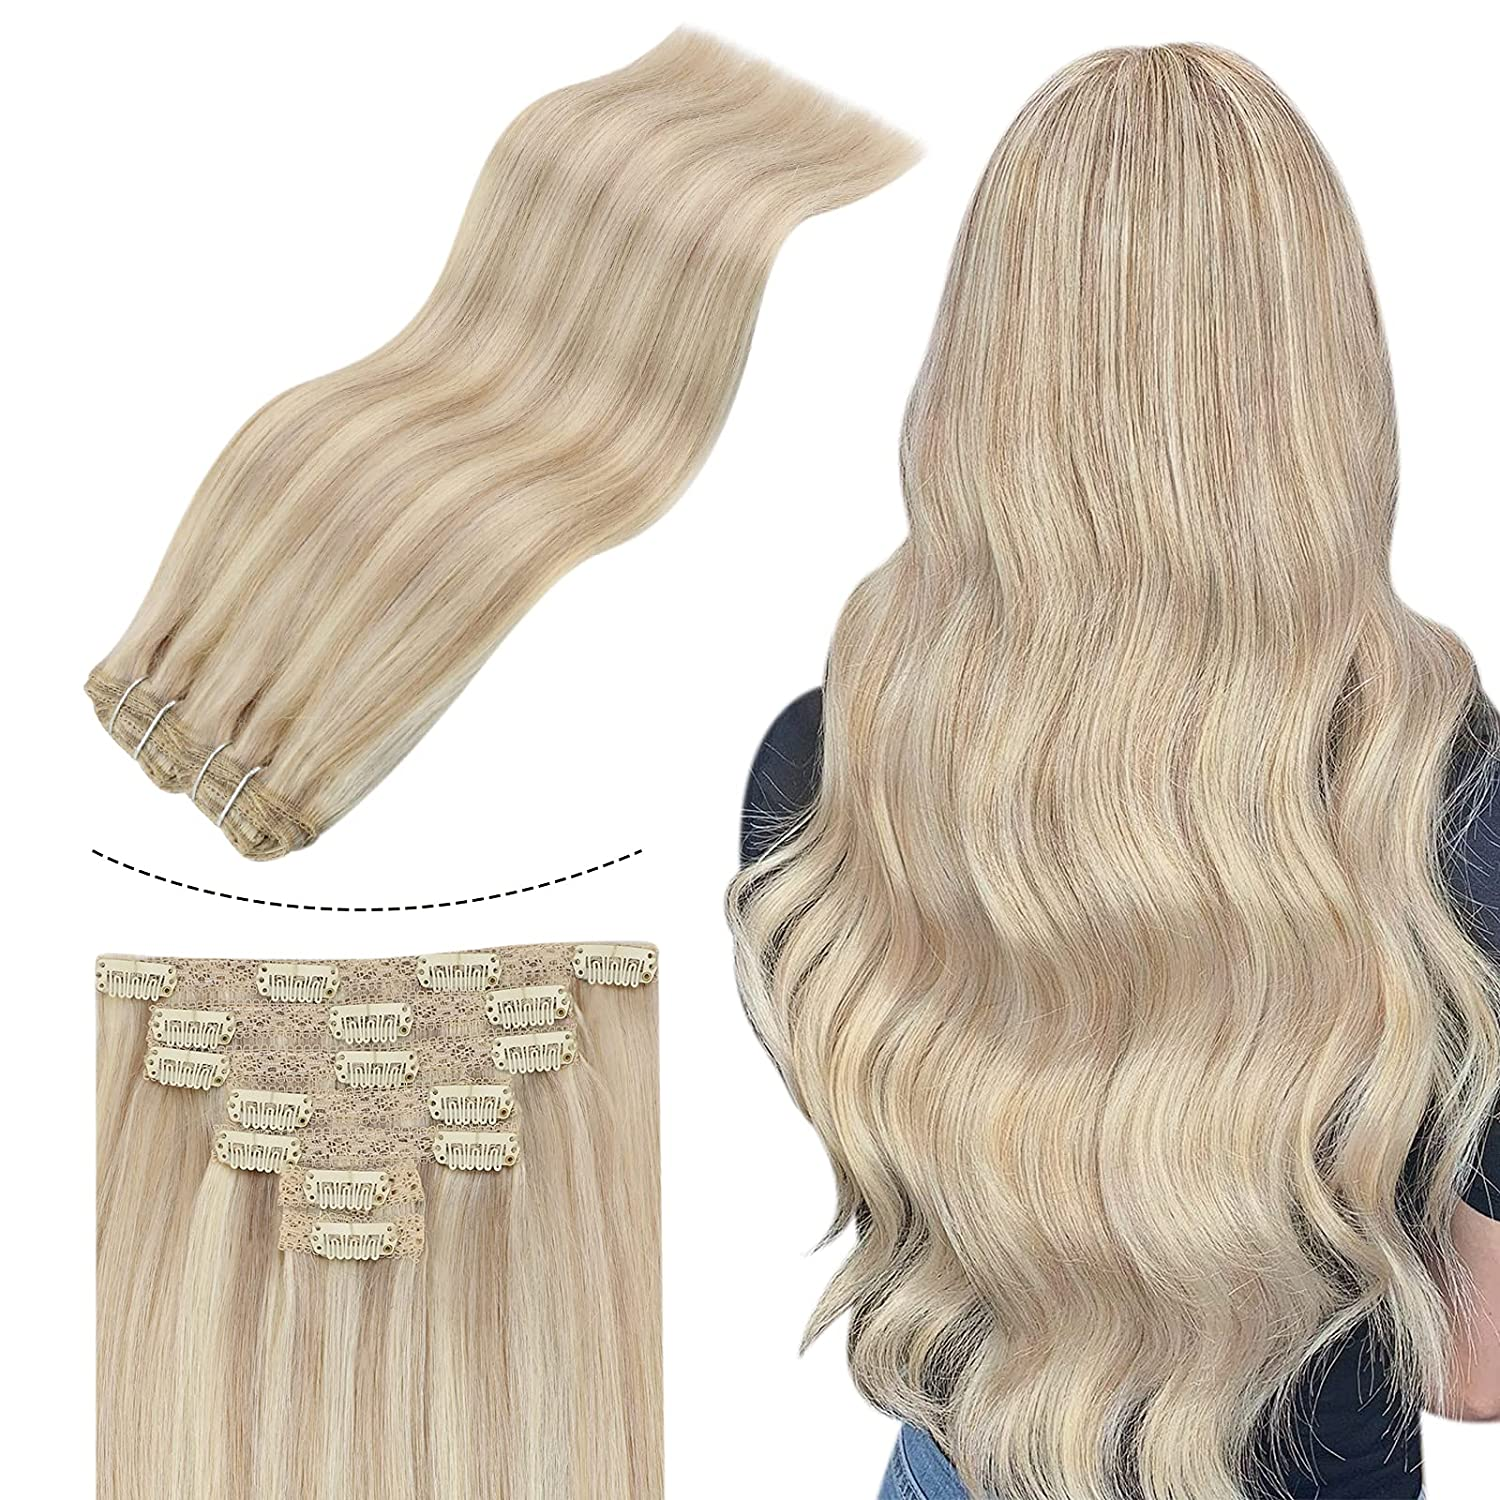 JoYoung Blonde Human Las Vegas Mall Hair Extensions Clip in Seamless overseas